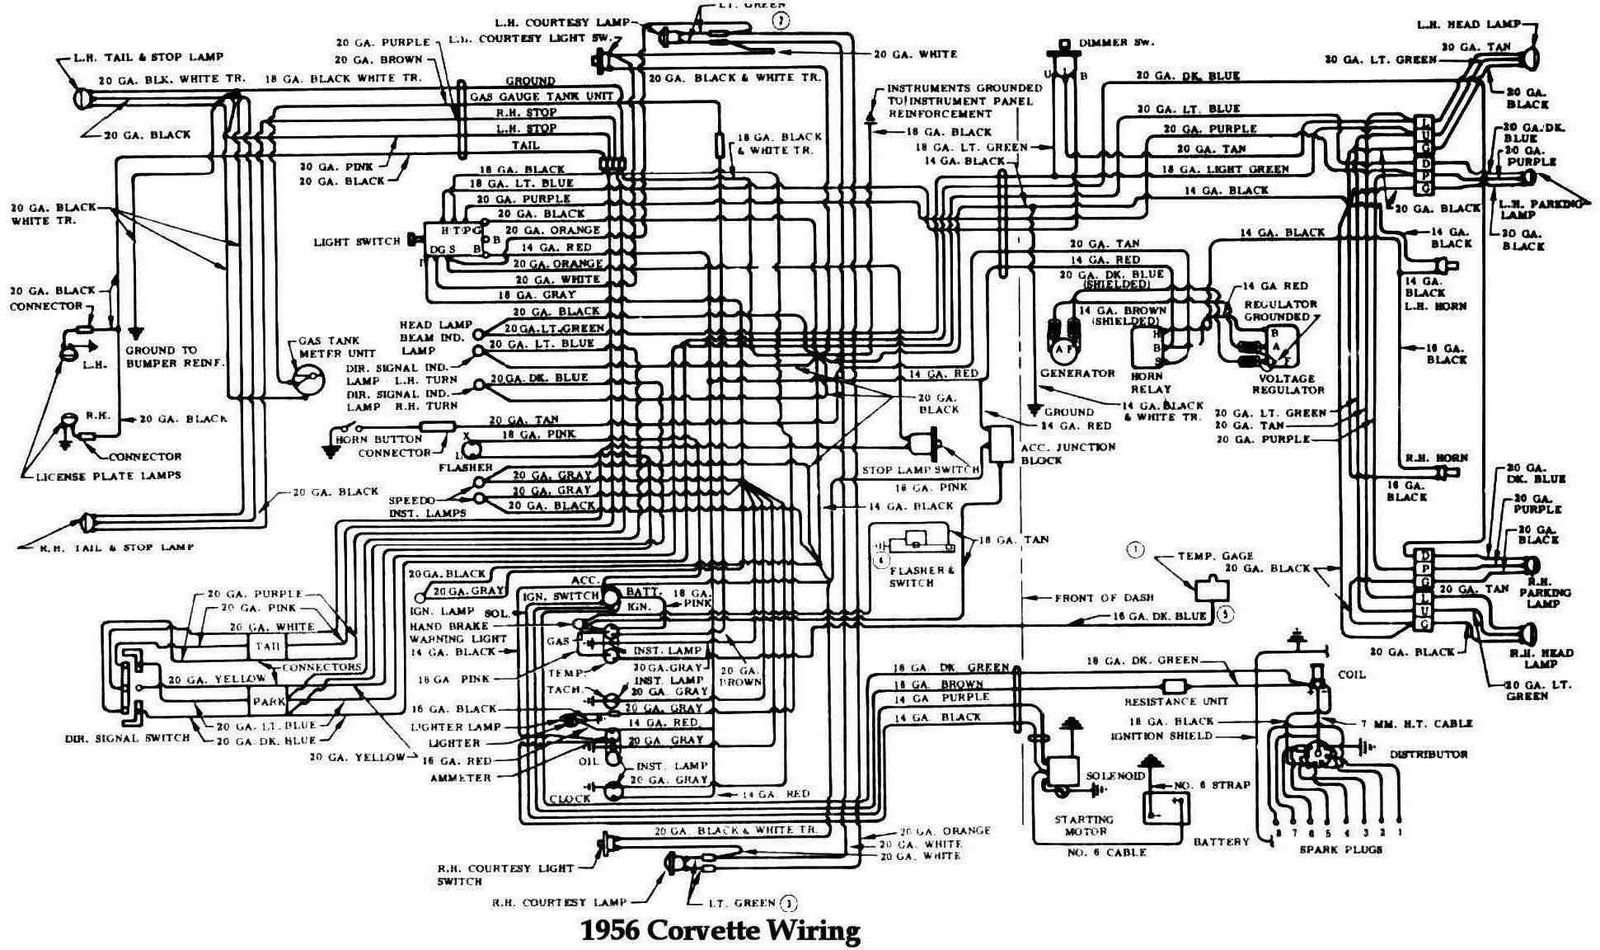 1994 Corvette Wiring Diagram Opinions About For Chevy Truck Silverado Heater Schematic Autos Post 1984 1990